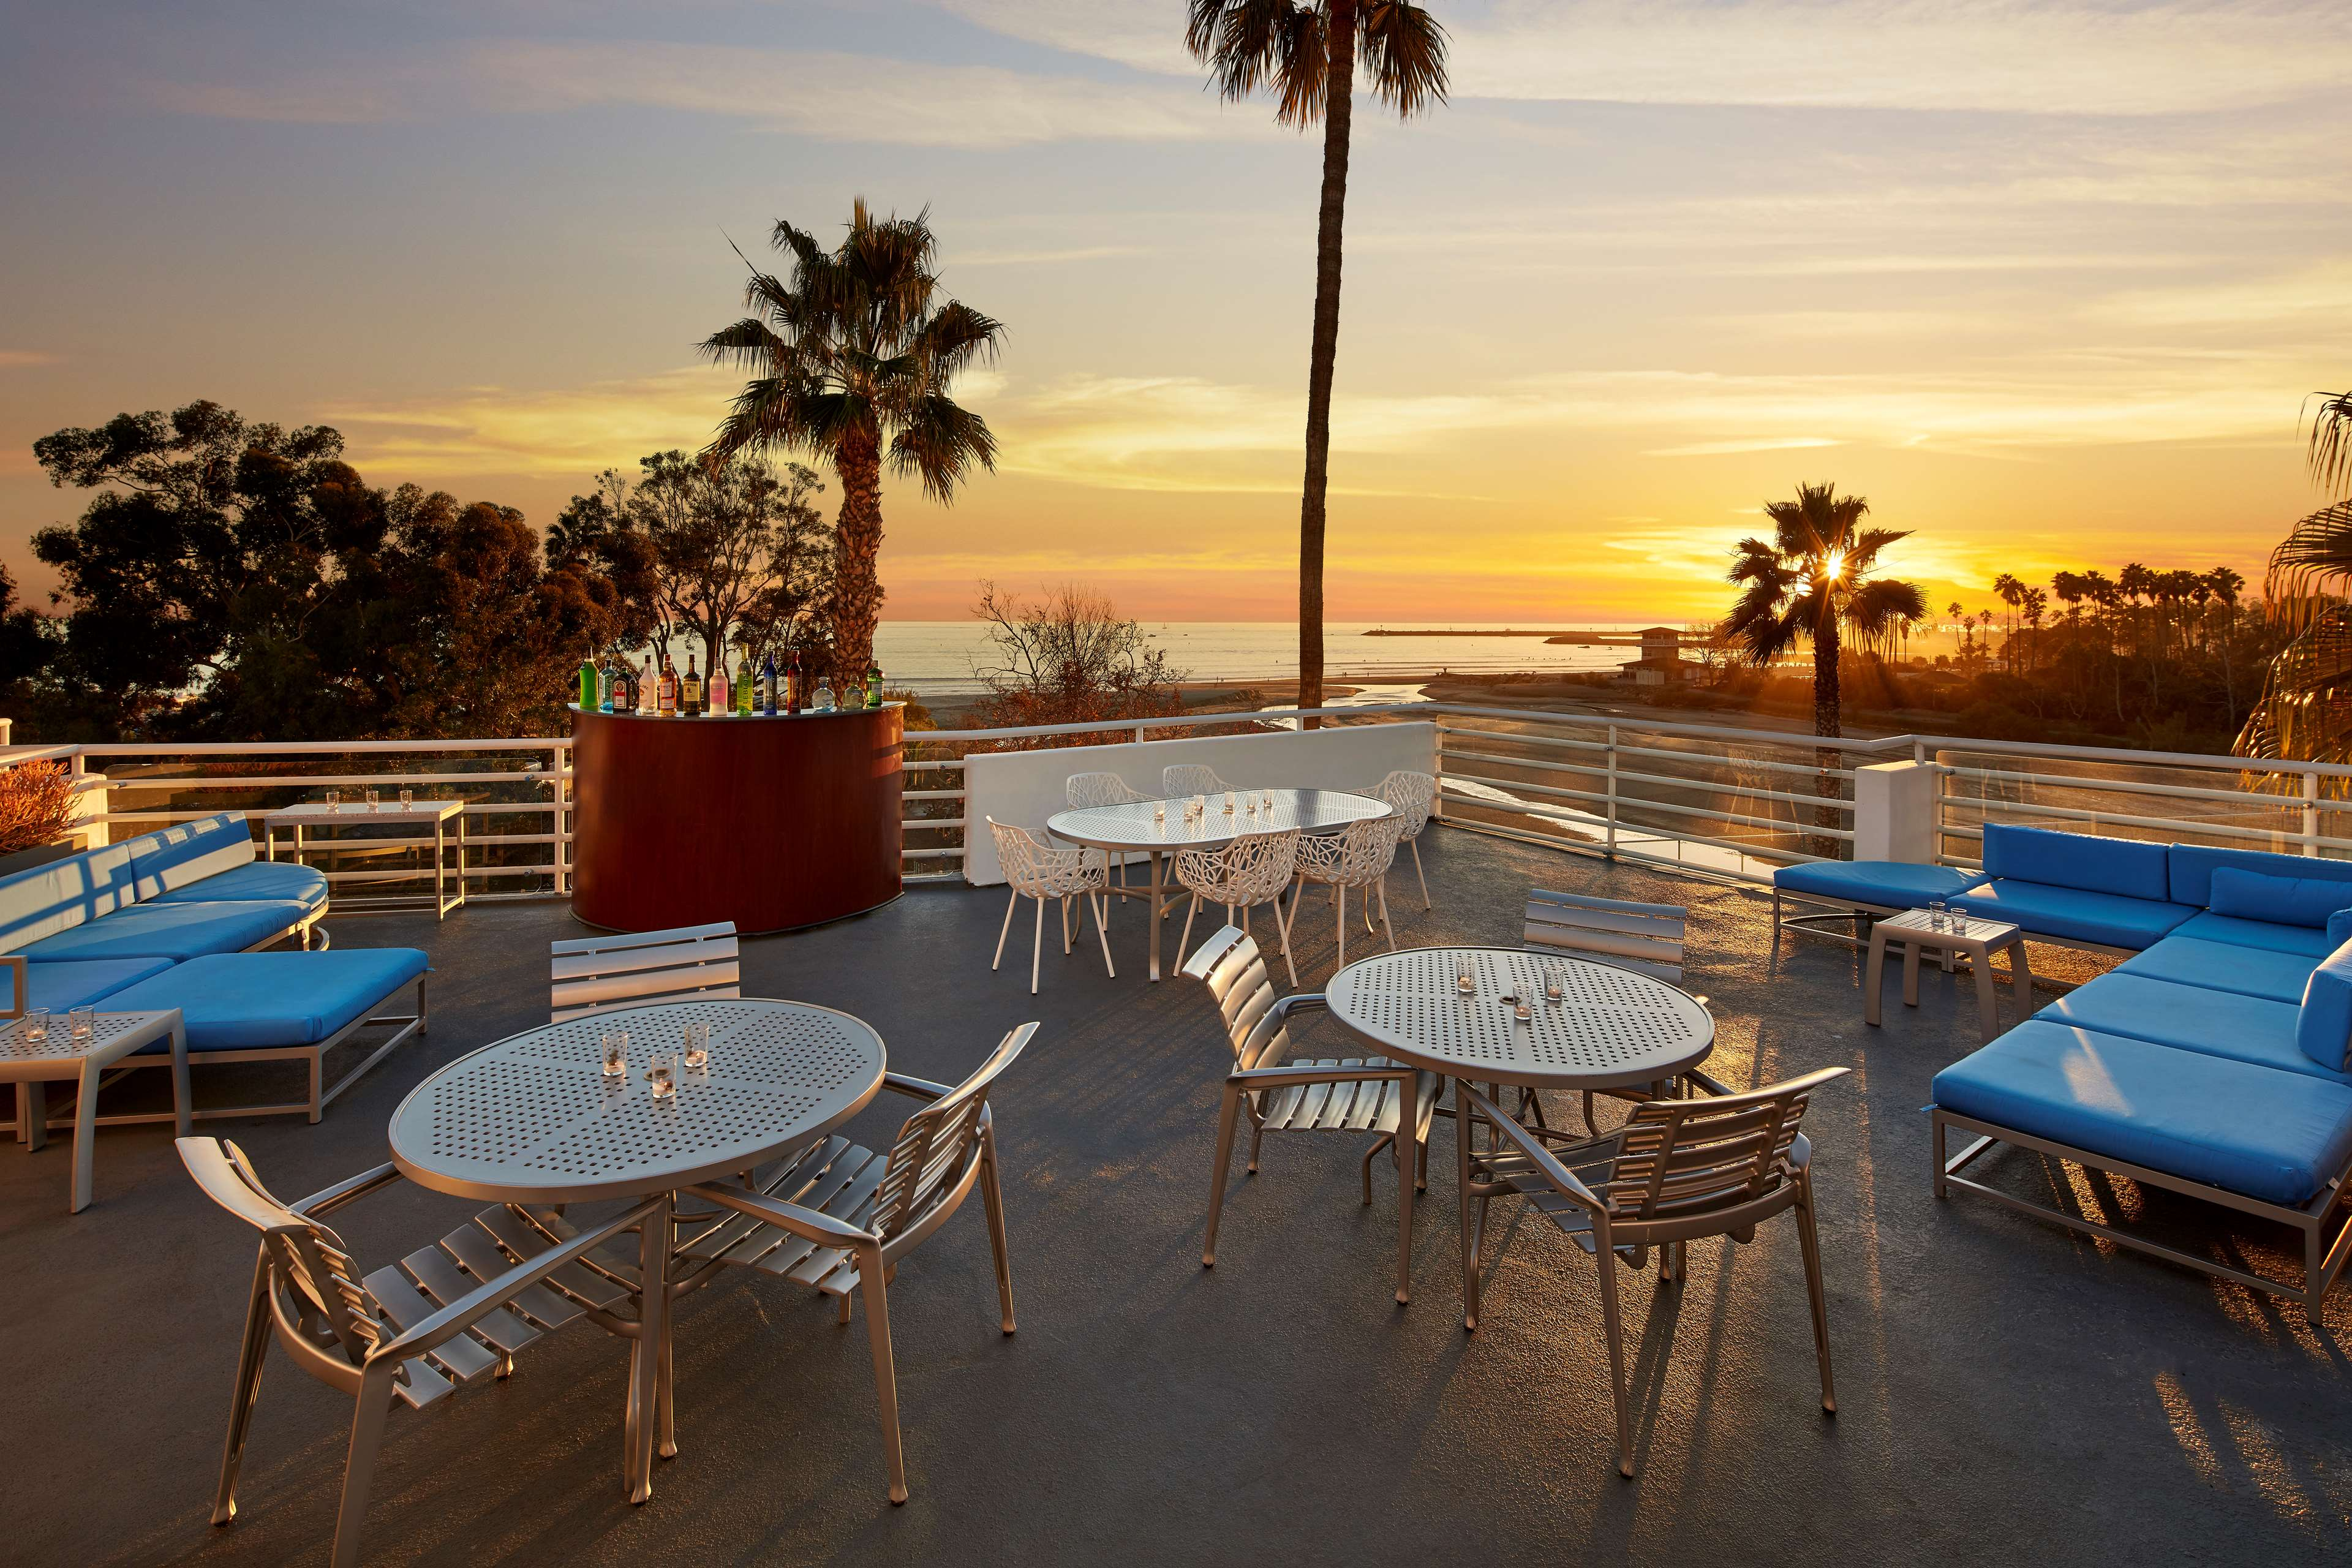 DoubleTree Suites by Hilton Hotel Doheny Beach - Dana Point image 31